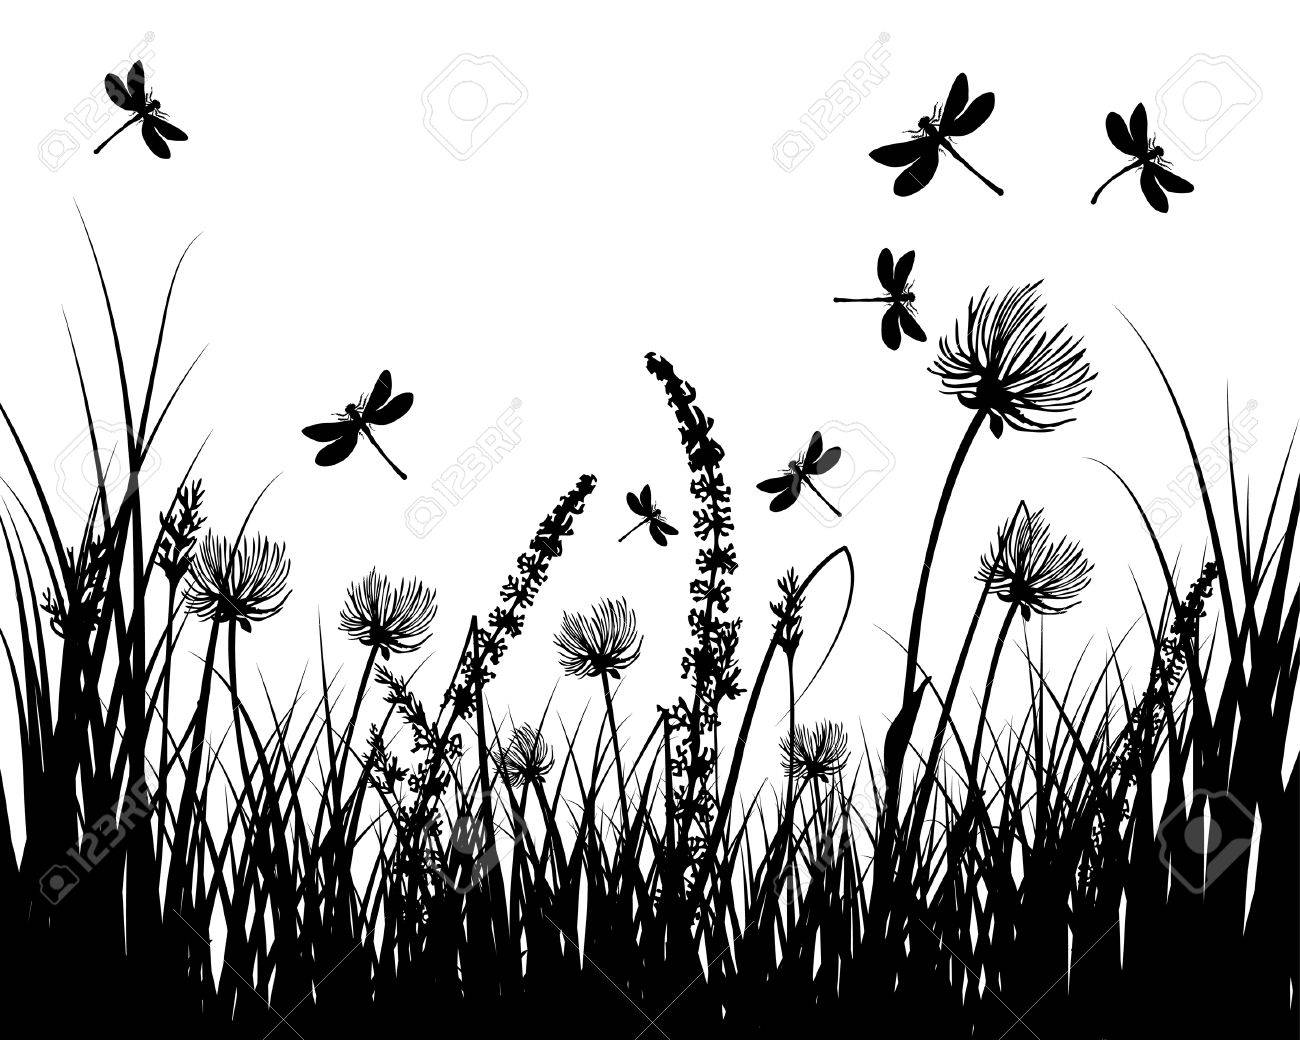 Vector grass silhouettes background. All objects are separated. Stock Vector - 5716838